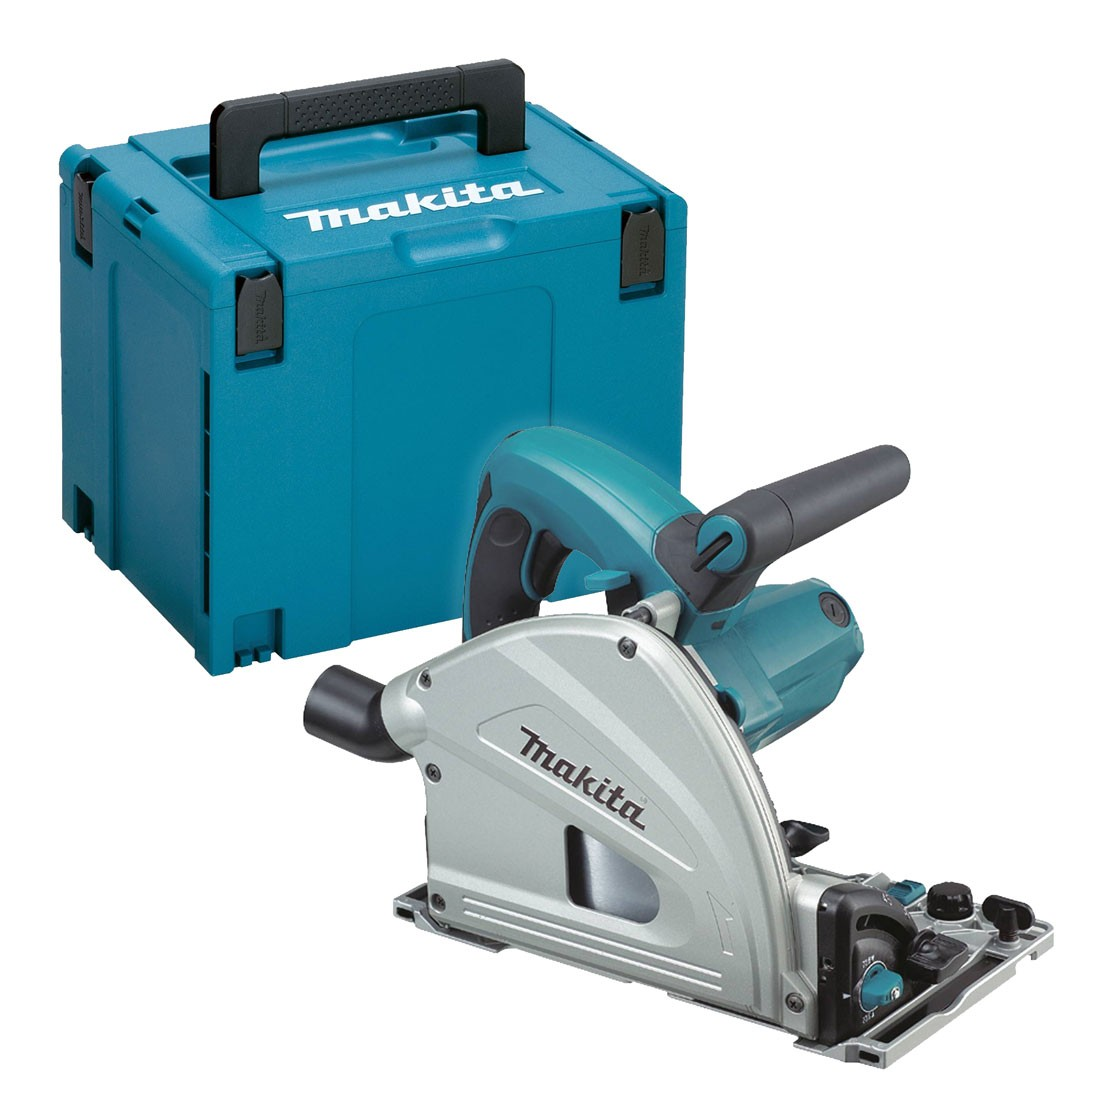 Makita SP6000J 110V 165mm Plunge Cut Saw - Depth Stopper for Splinter-Free Cutting